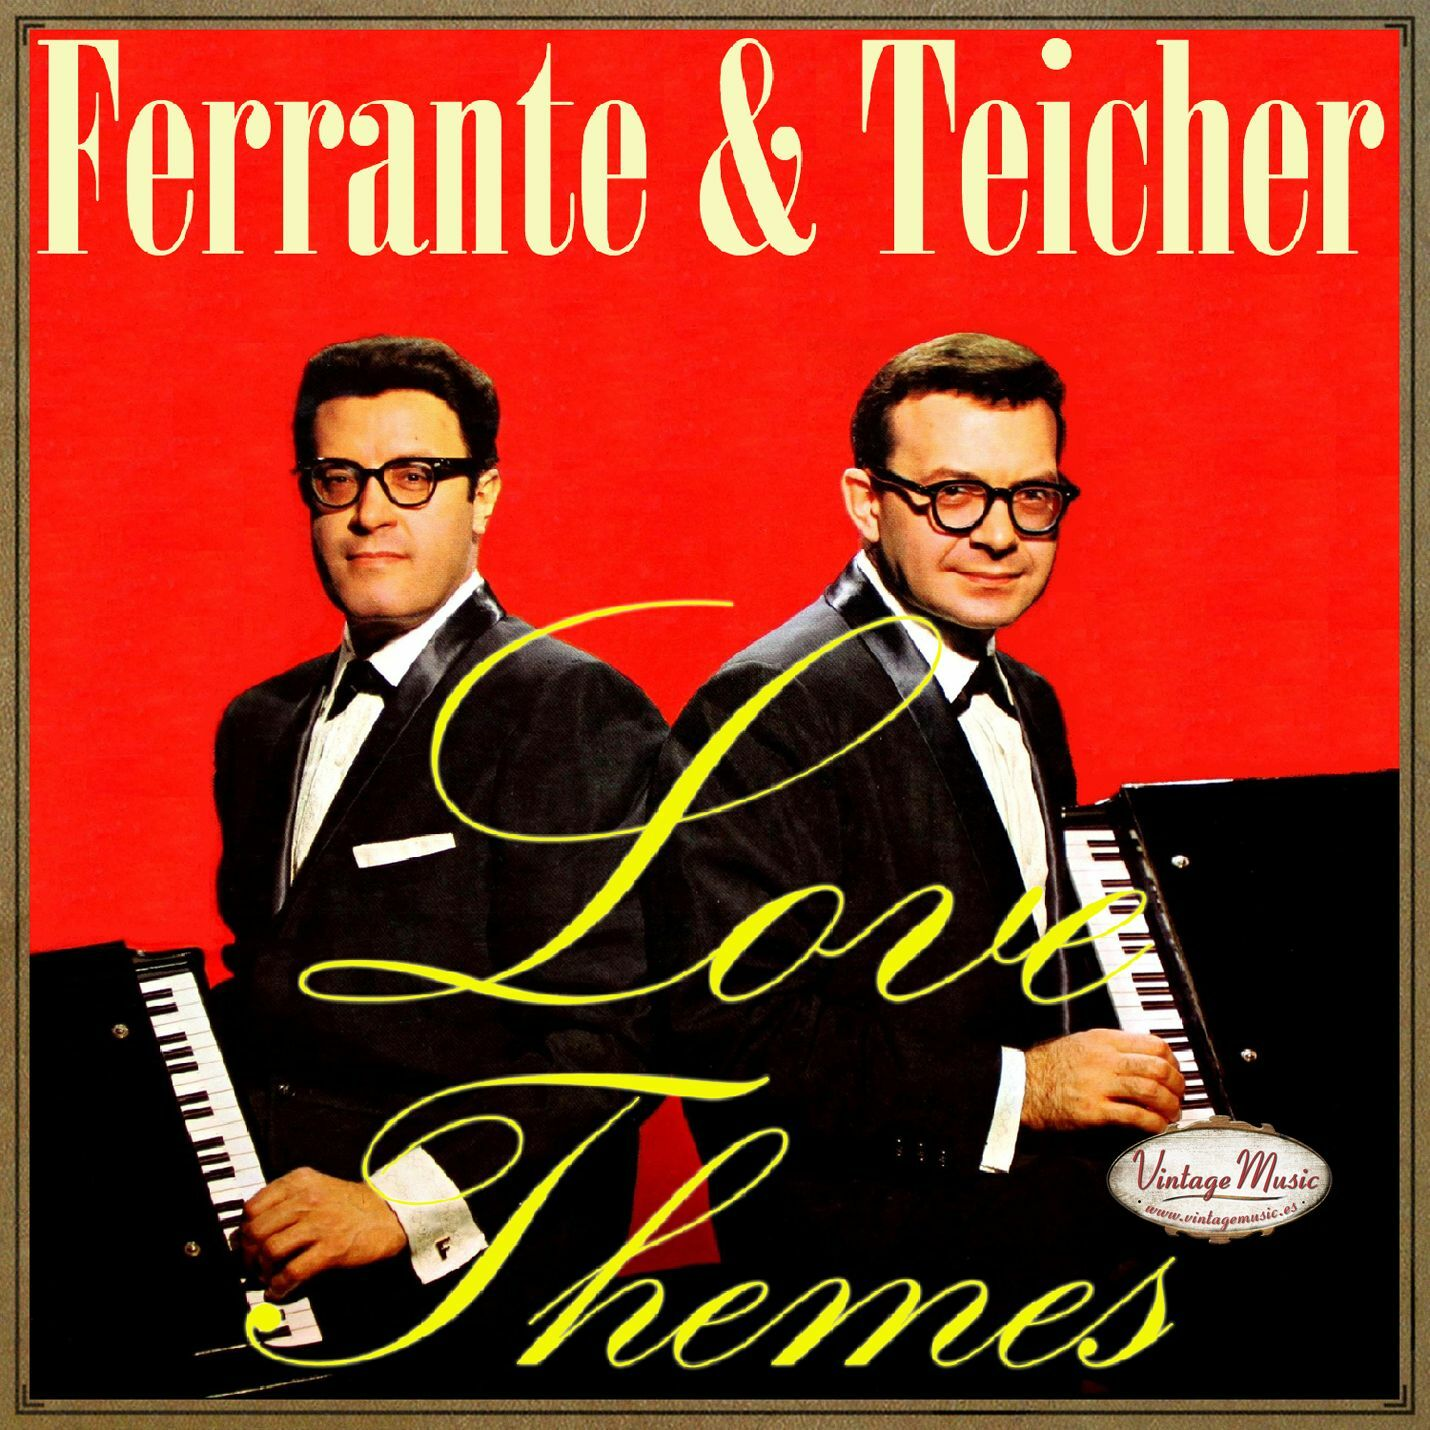 ferrante teicher cd vintage dance orchestra love themes my